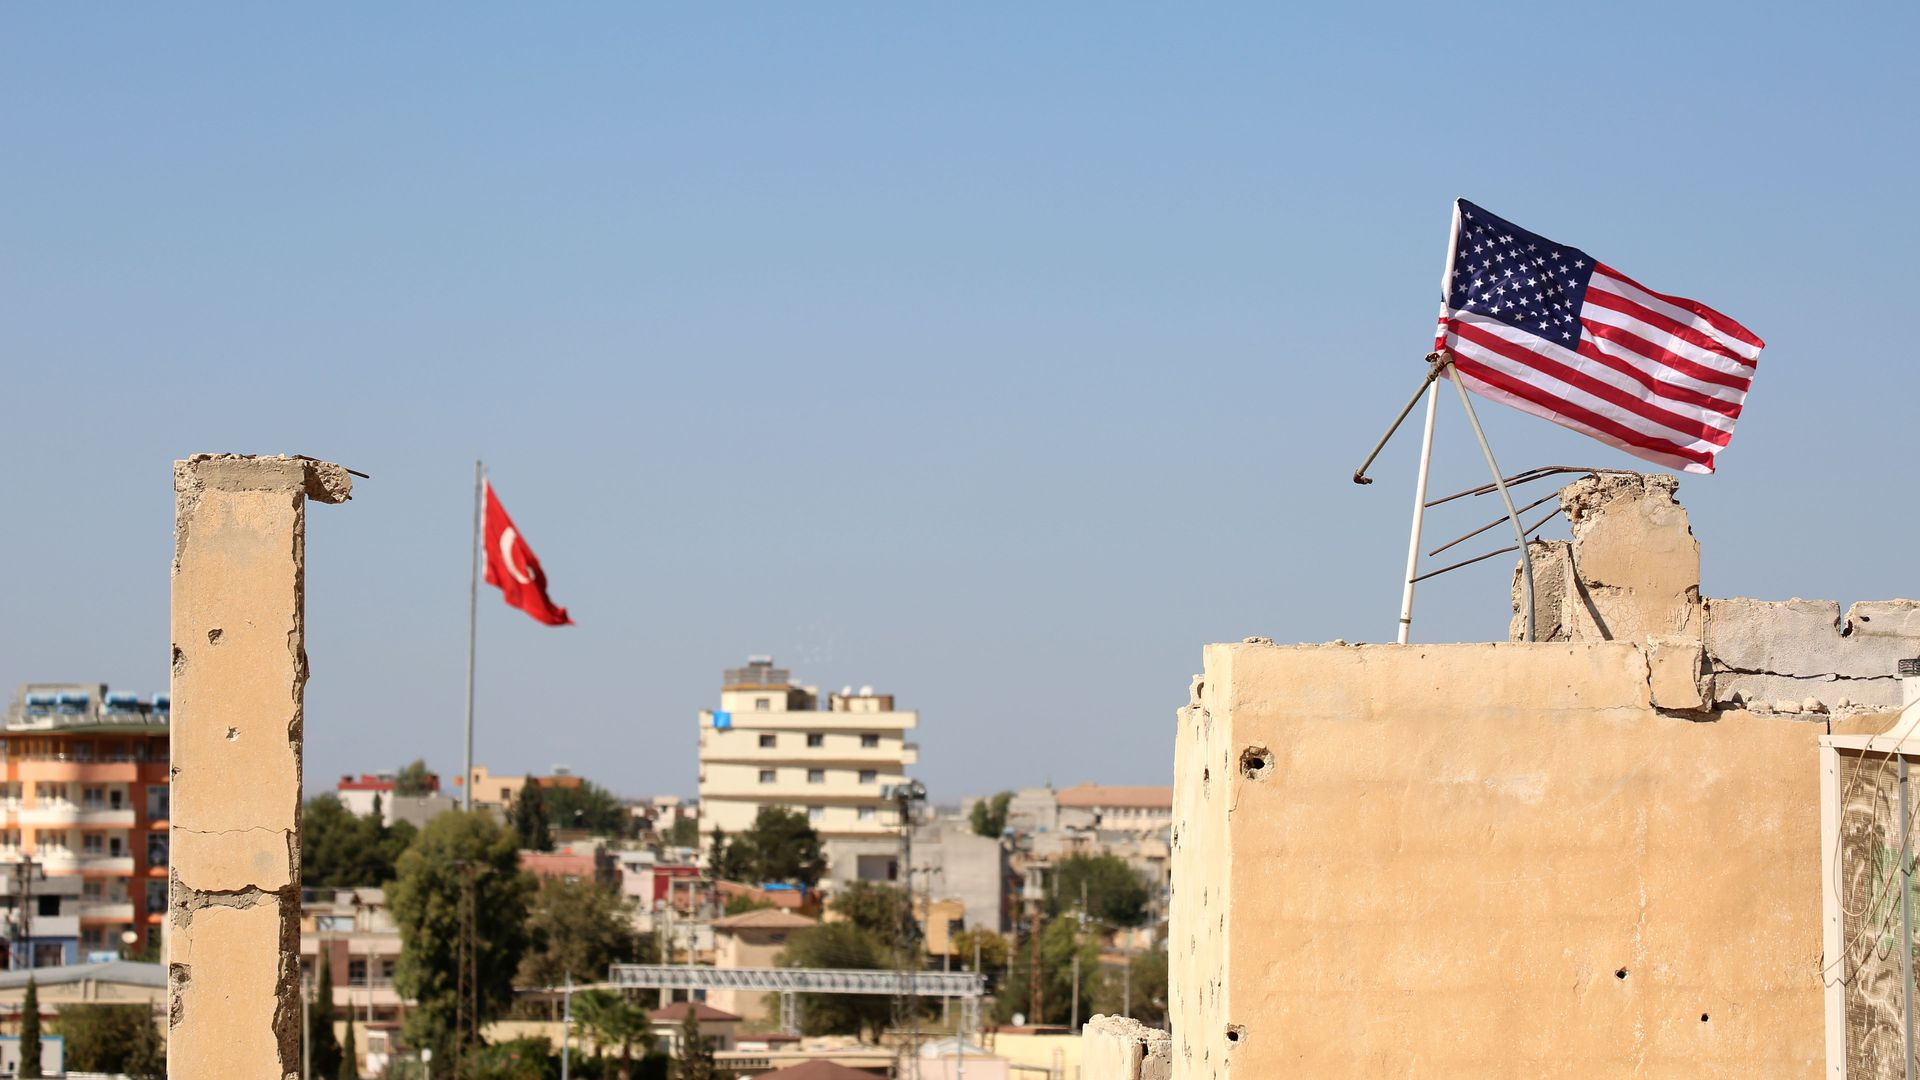 A picture taken on September 17, 2016 shows an American flag (R) fluttering above a building used by the Kurdish police known as the Asayish, in the Syrian town of Tal Abyad.